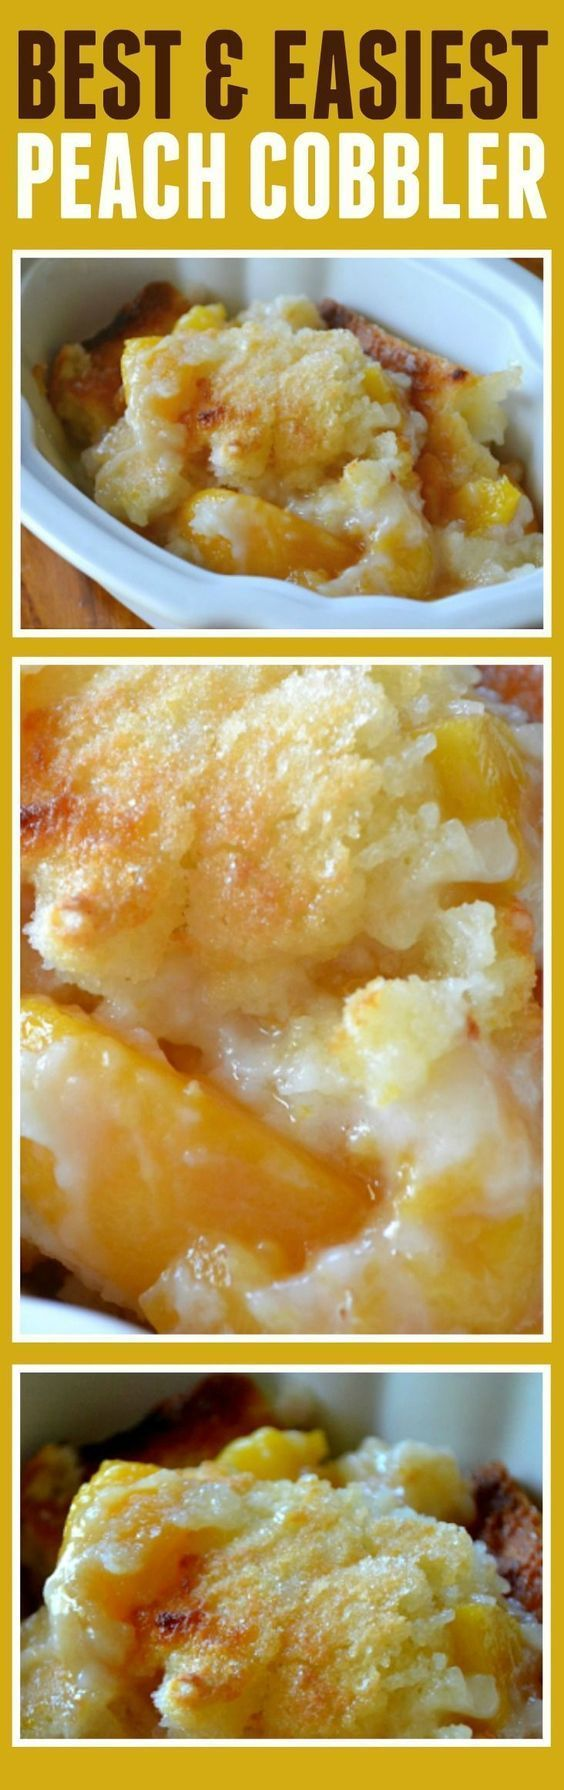 This peach cobbler recipe is the best and easiest recipe I have ever made. It doesn't hurt that it tastes super yum especially when topped with a little vanilla bean ice cream. Drool!: